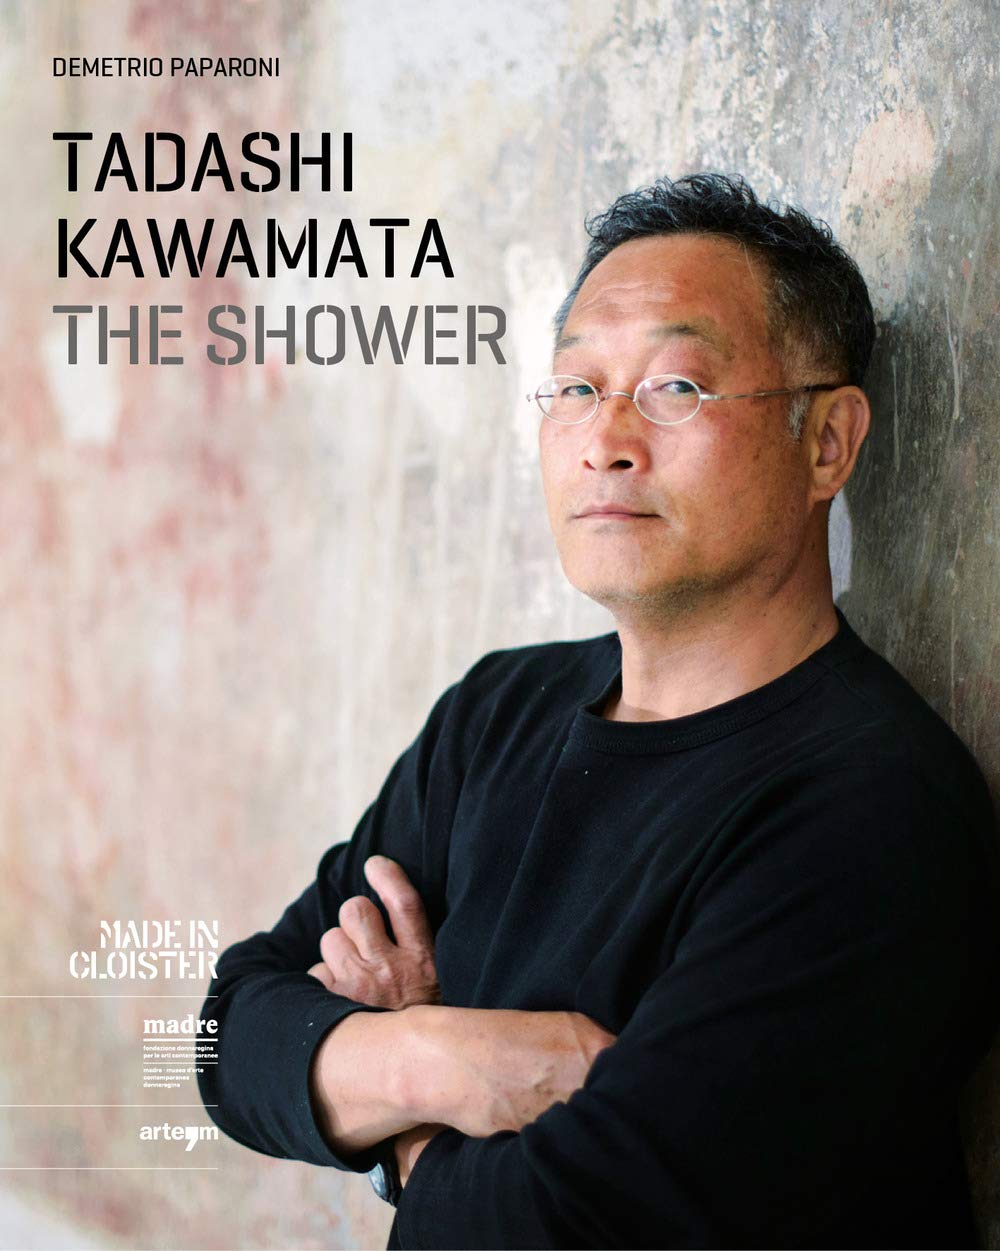 TADASHI KAWAMATA /THE SHOWER / Fondazione Made in Cloister 2017